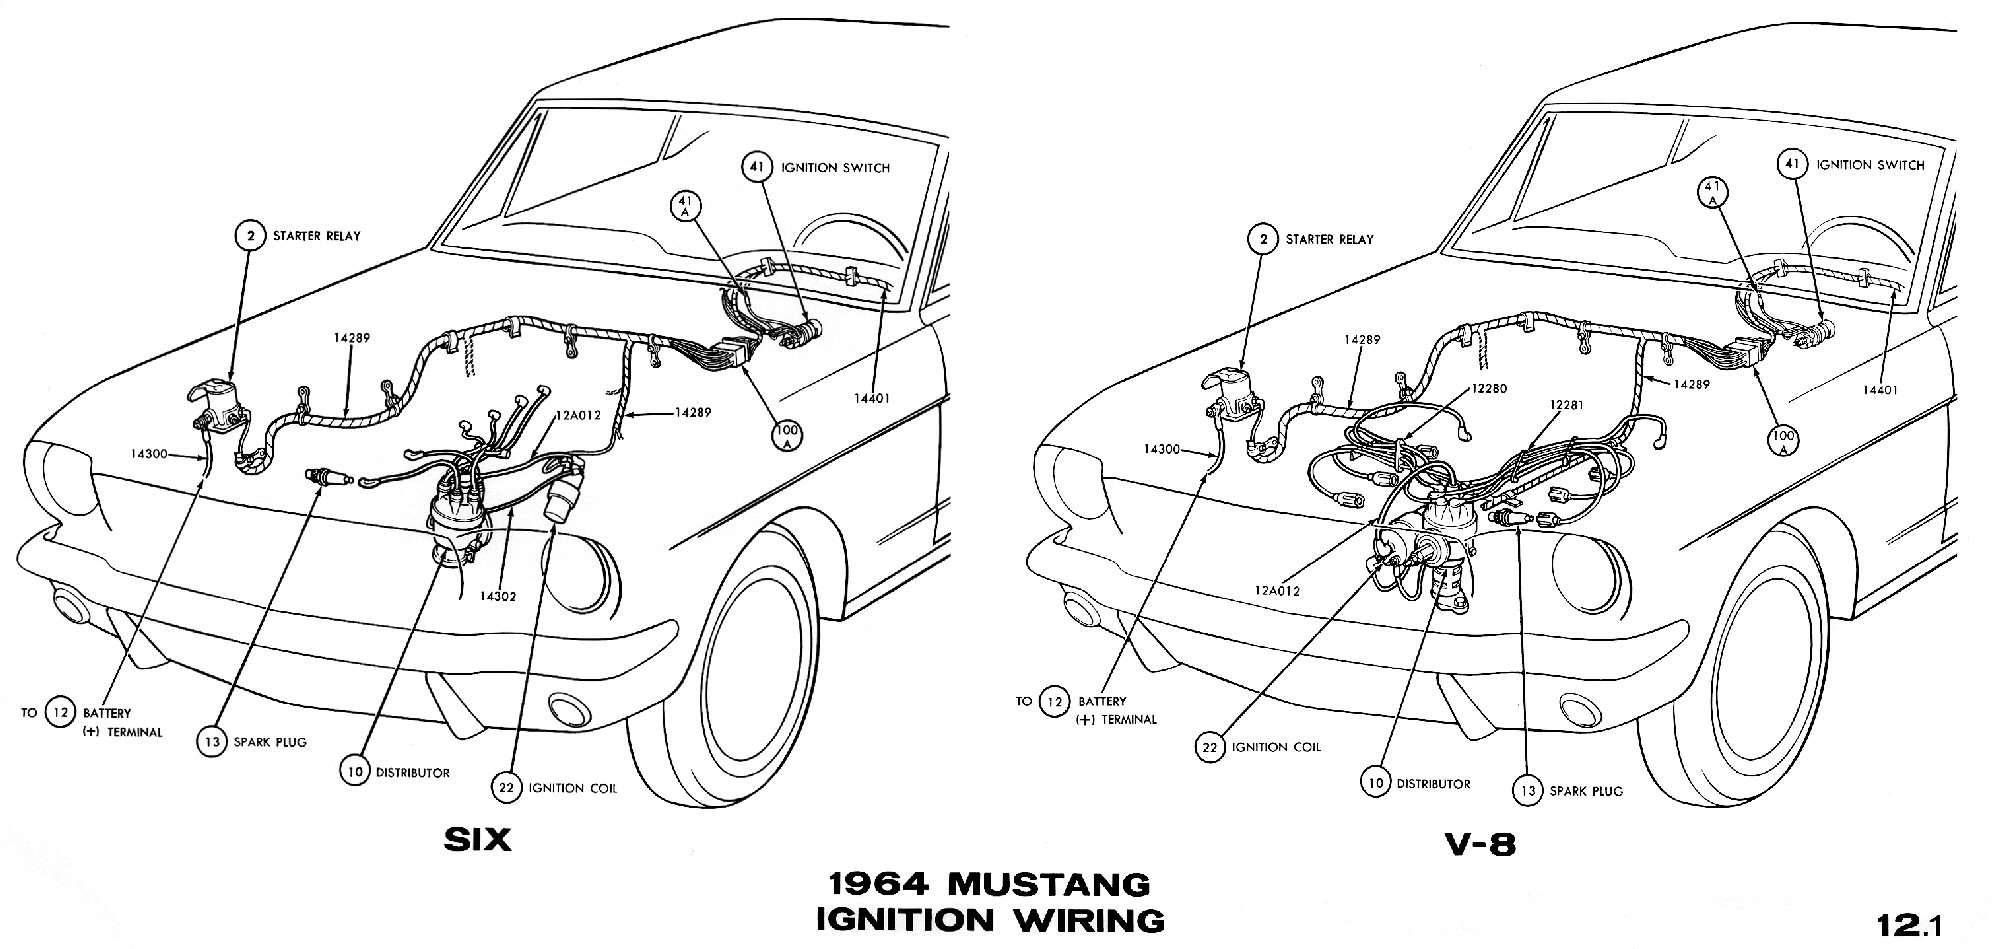 1964c wiring diagram 1966 mustang the wiring diagram readingrat net 65 mustang ignition wiring diagram at mifinder.co